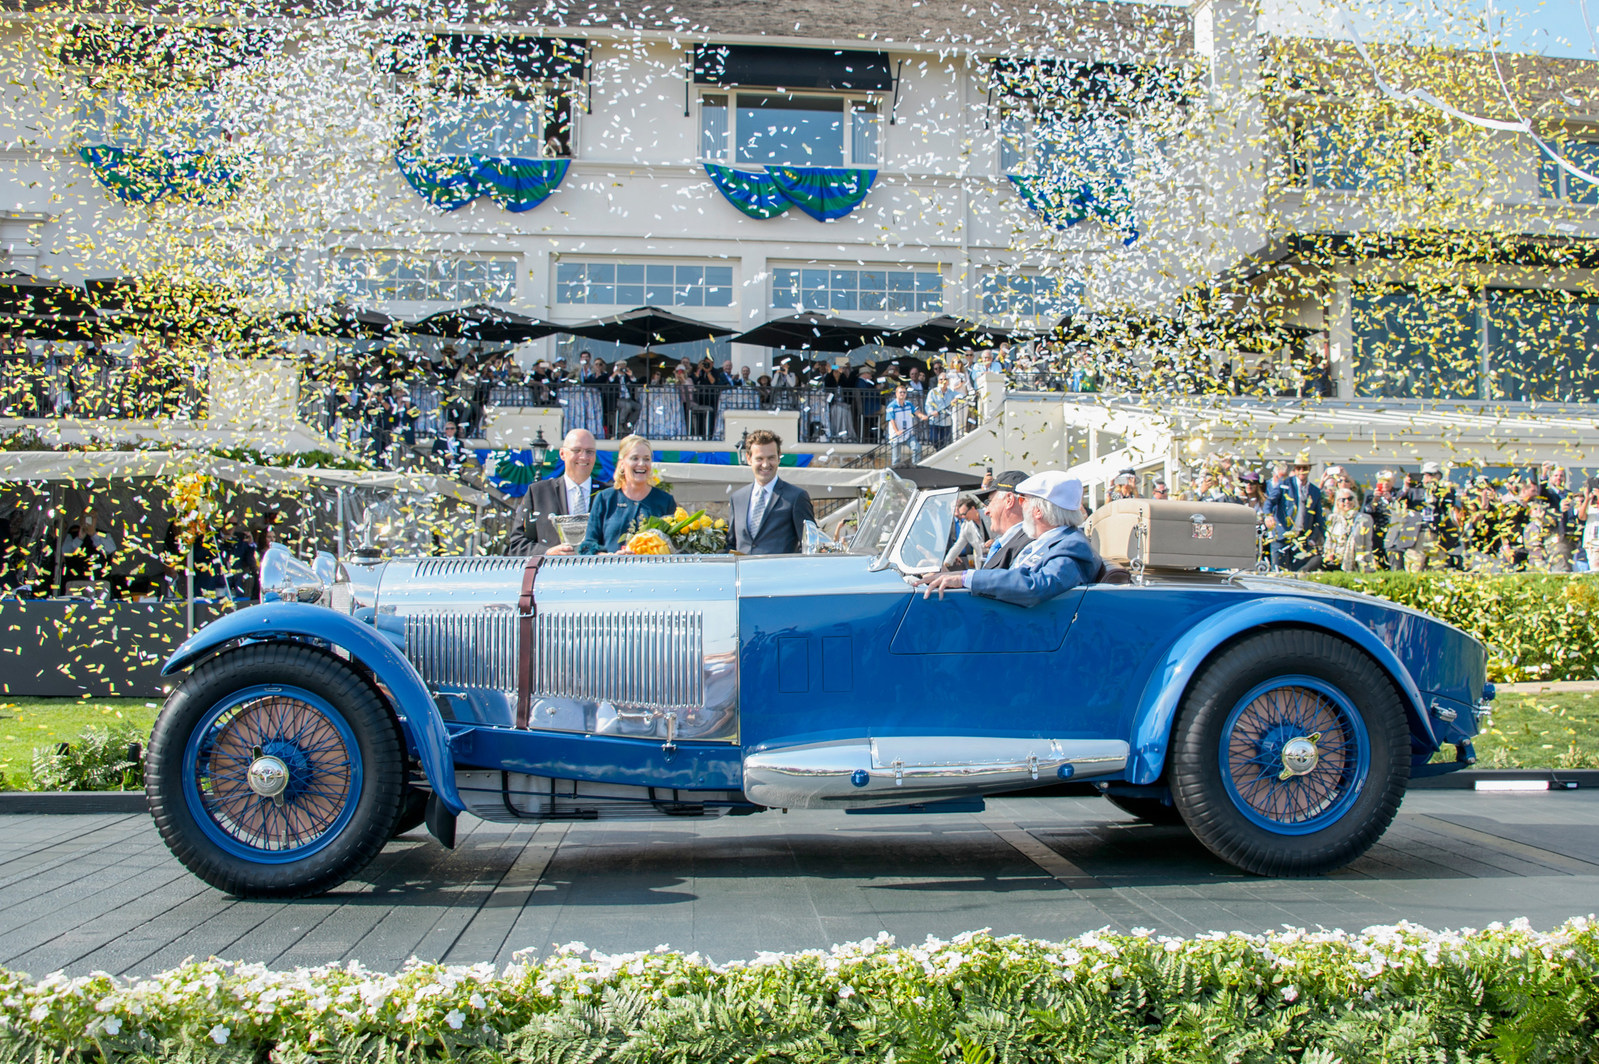 This 1929 Mercedes-Benz S Barker Tourer was named Best of Show at the 2017 Pebble Beach Concours d'Elegance. Pictured from left to right are Pebble Beach Company CEO William L. Perocchi, Concours Chairman Sandra Button, Emcee Derek Hill, restorer Stephen Babinsky, and owner Bruce R. McCaw. (Copyright © Kimball Studios / Courtesy of Pebble Beach Concours d'Elegance) (PRNewsfoto/Pebble Beach Concours d'Elegance)